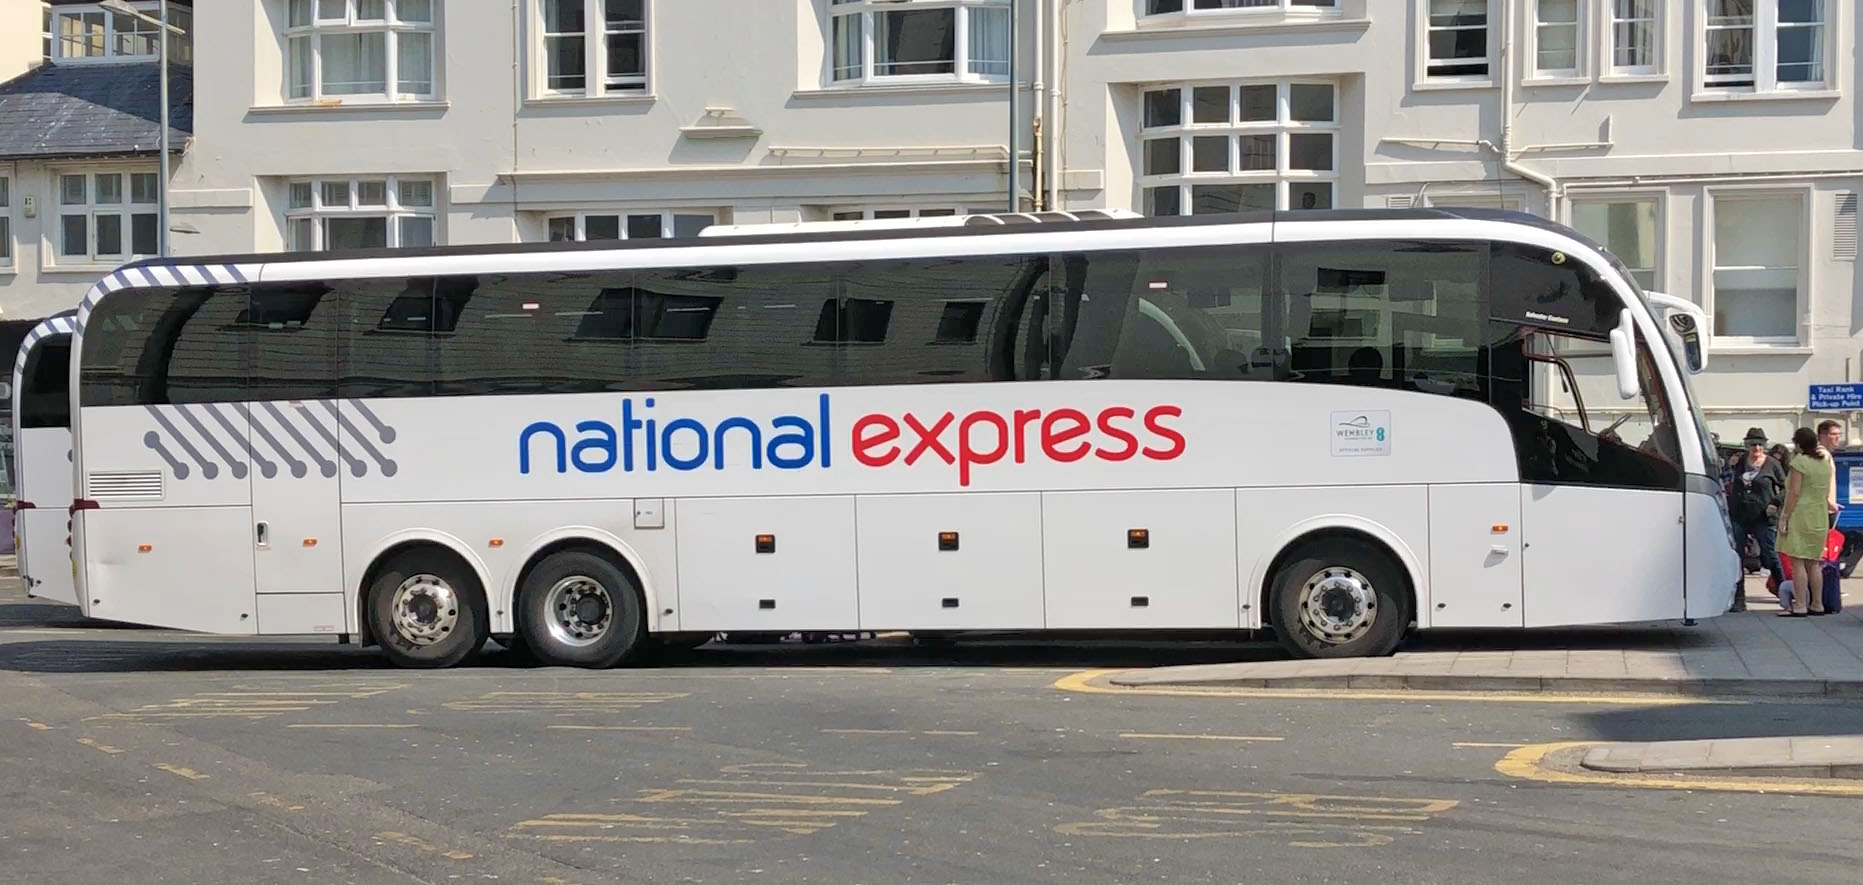 Reunited with my old friend, the National Express coach